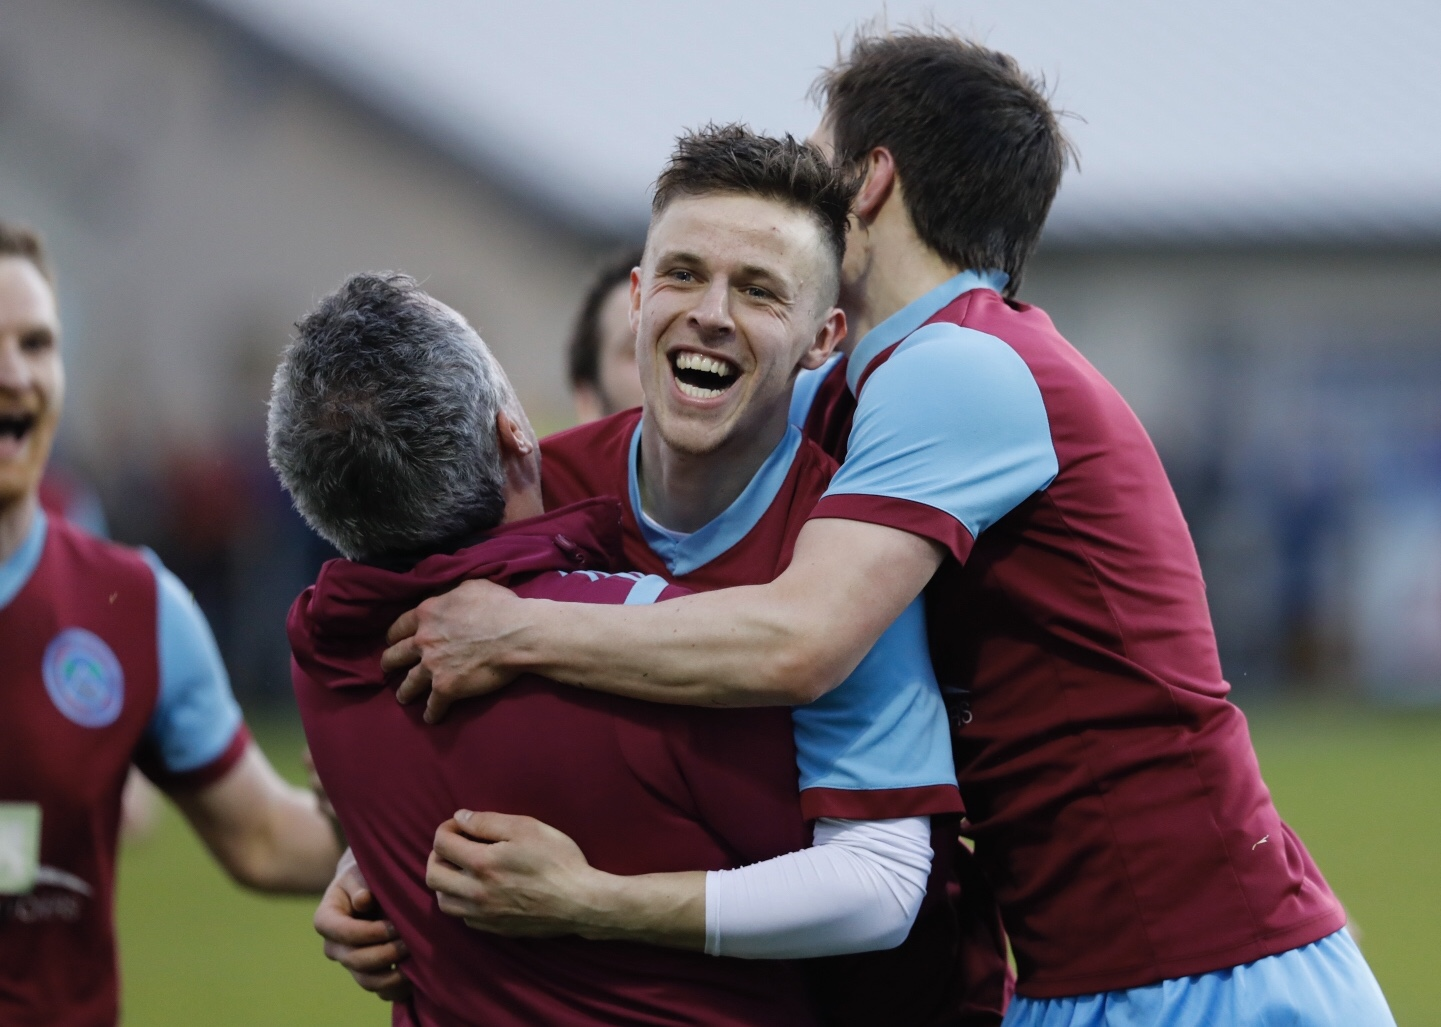 Emmet McNabb celebrates with manager Gerry Love after scoring Tummery's third goal.